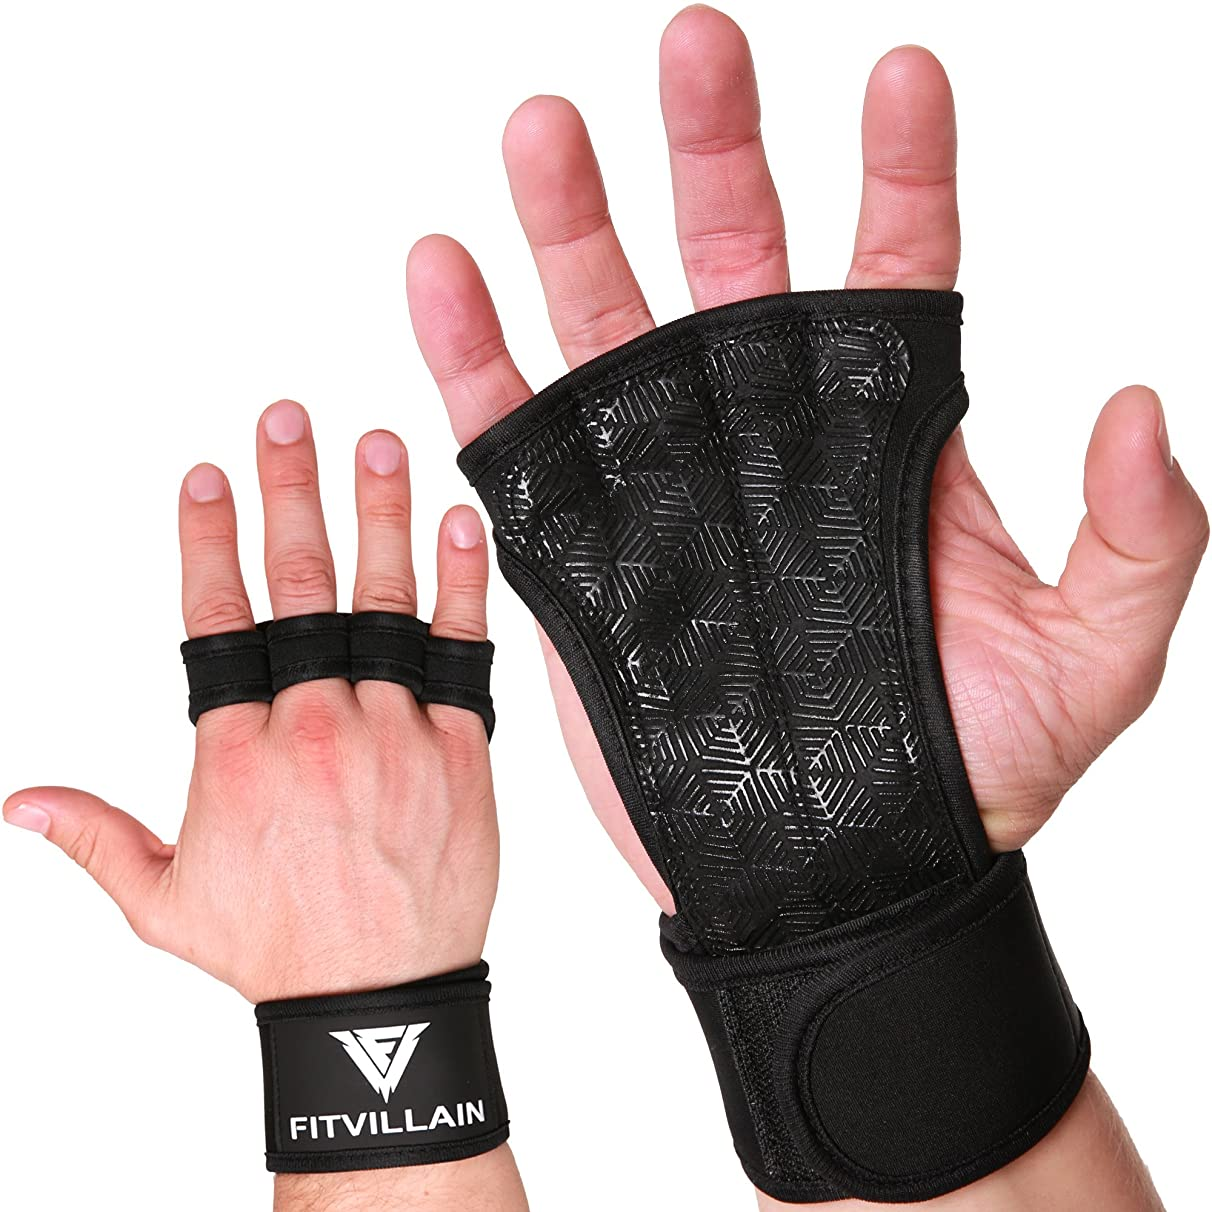 Crossfit Gloves with Built-In Wrist Wraps - Pull Up Gloves - Non-Slip Eco+ Neoprene Padding for Extra Grip - Protection - Comfort - Ideal for Cross Training - WODs - Weight Lifting - Suits Men & Women